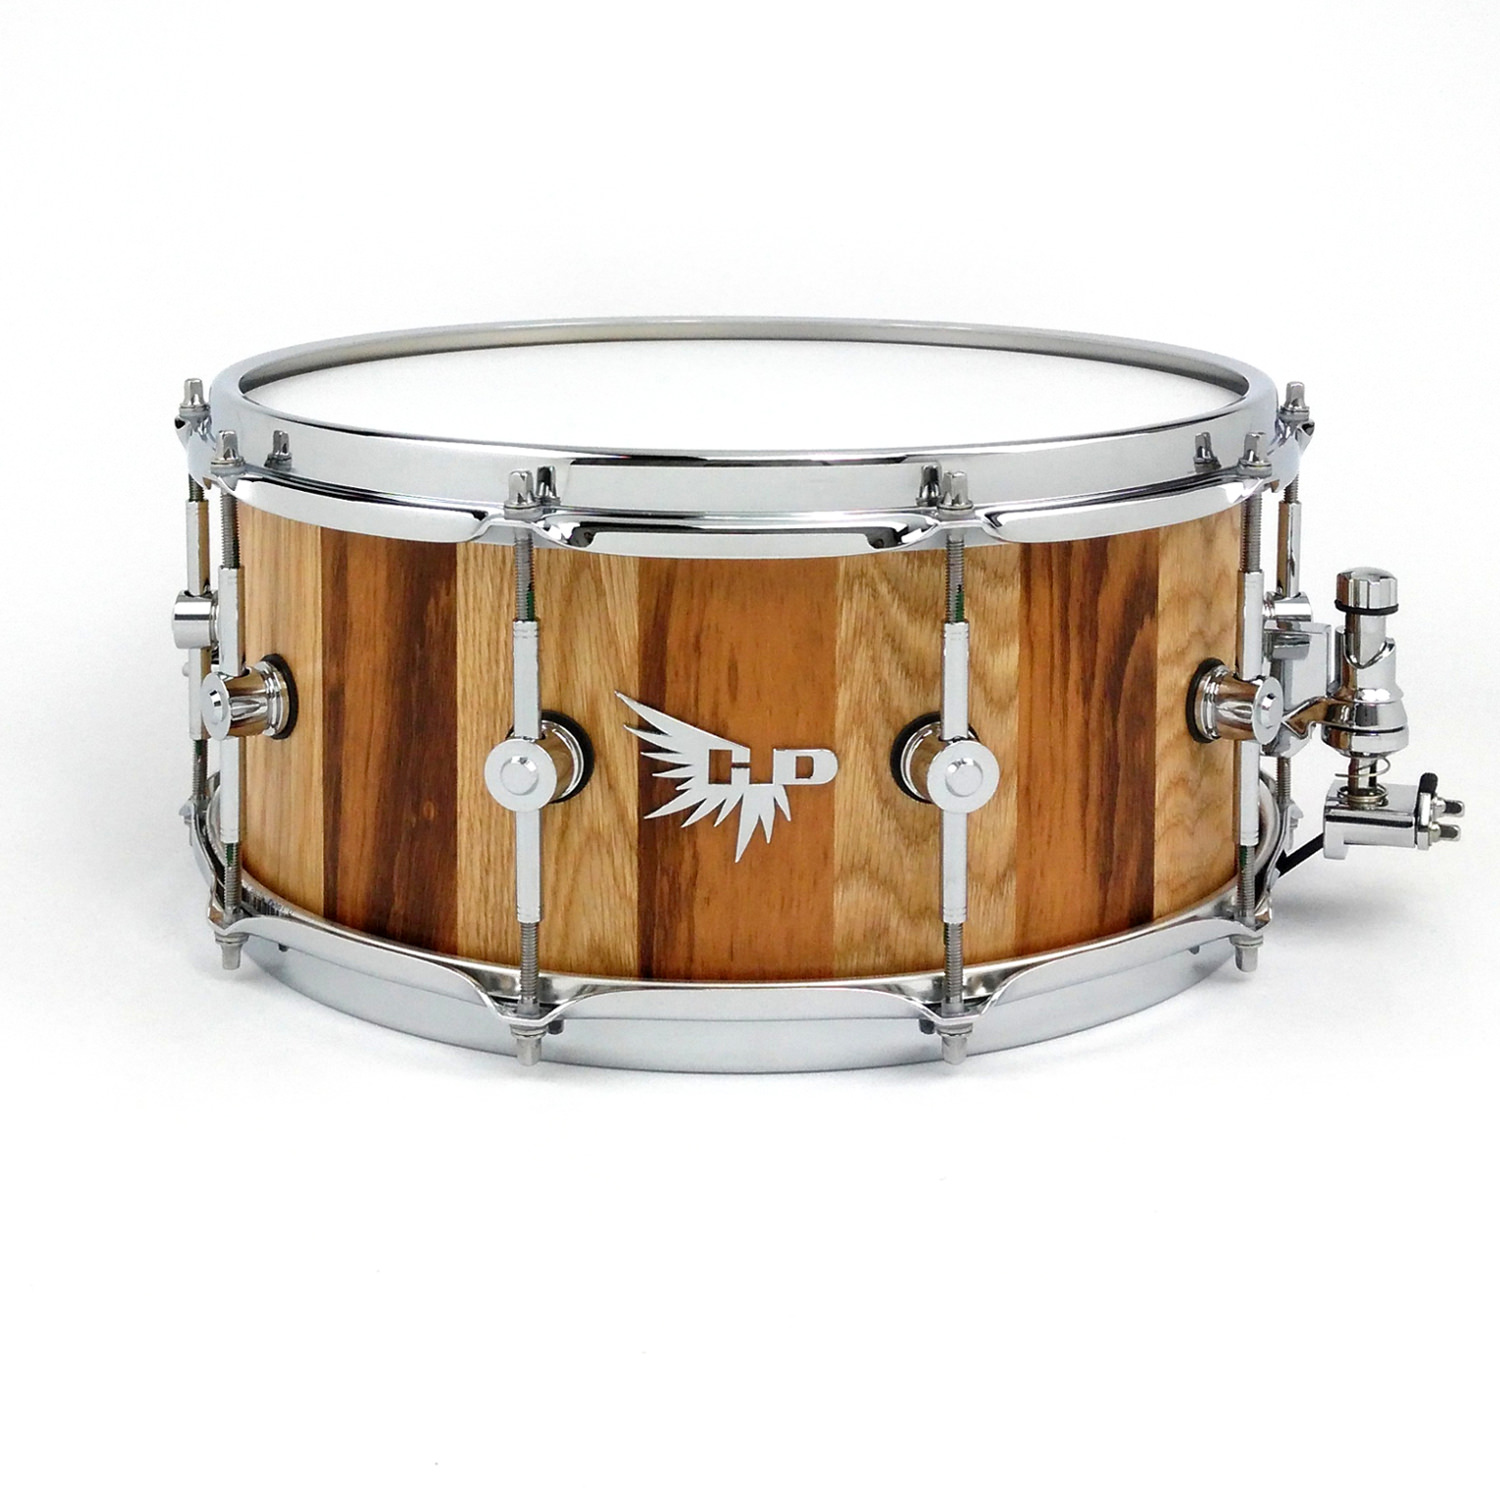 Tigerwood Oak Striped Snare Drum Stave Hendrix Drums Tama